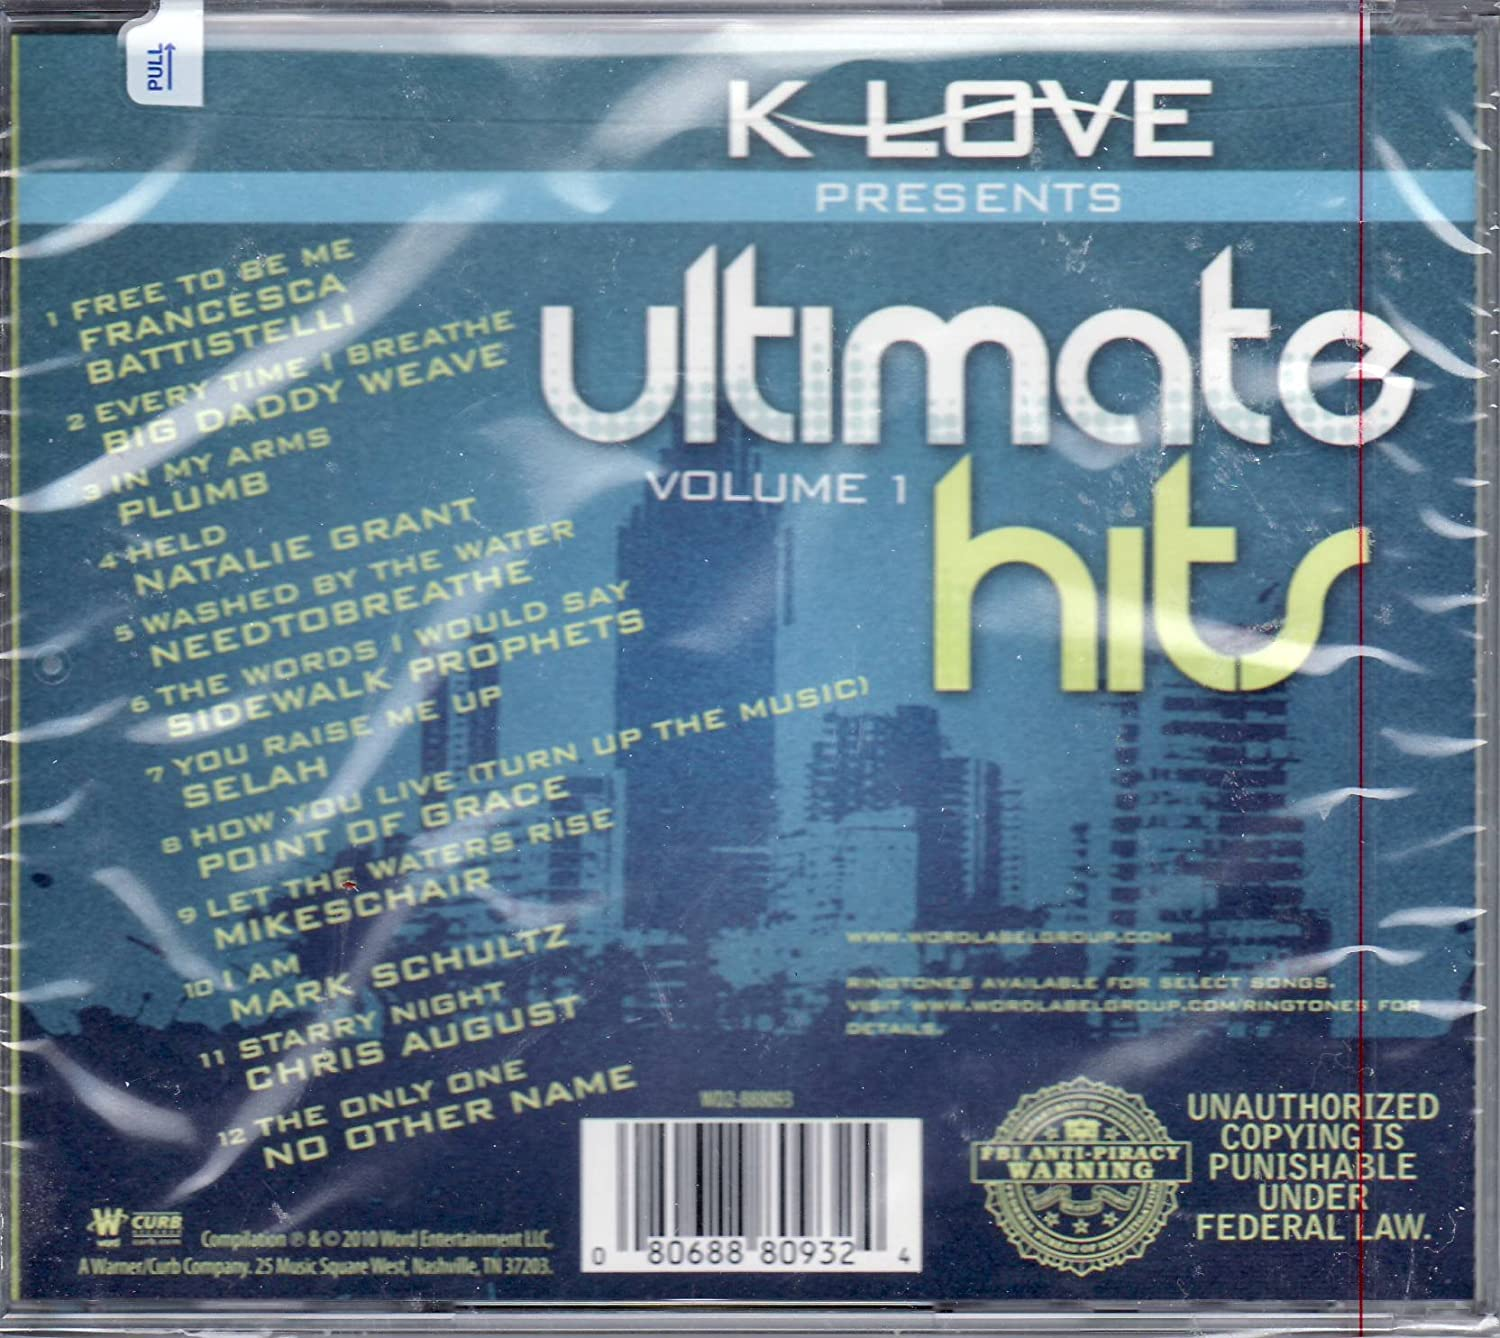 K-Love Presents Ultimate Hits Volume 1 CD - Amazon.com Music